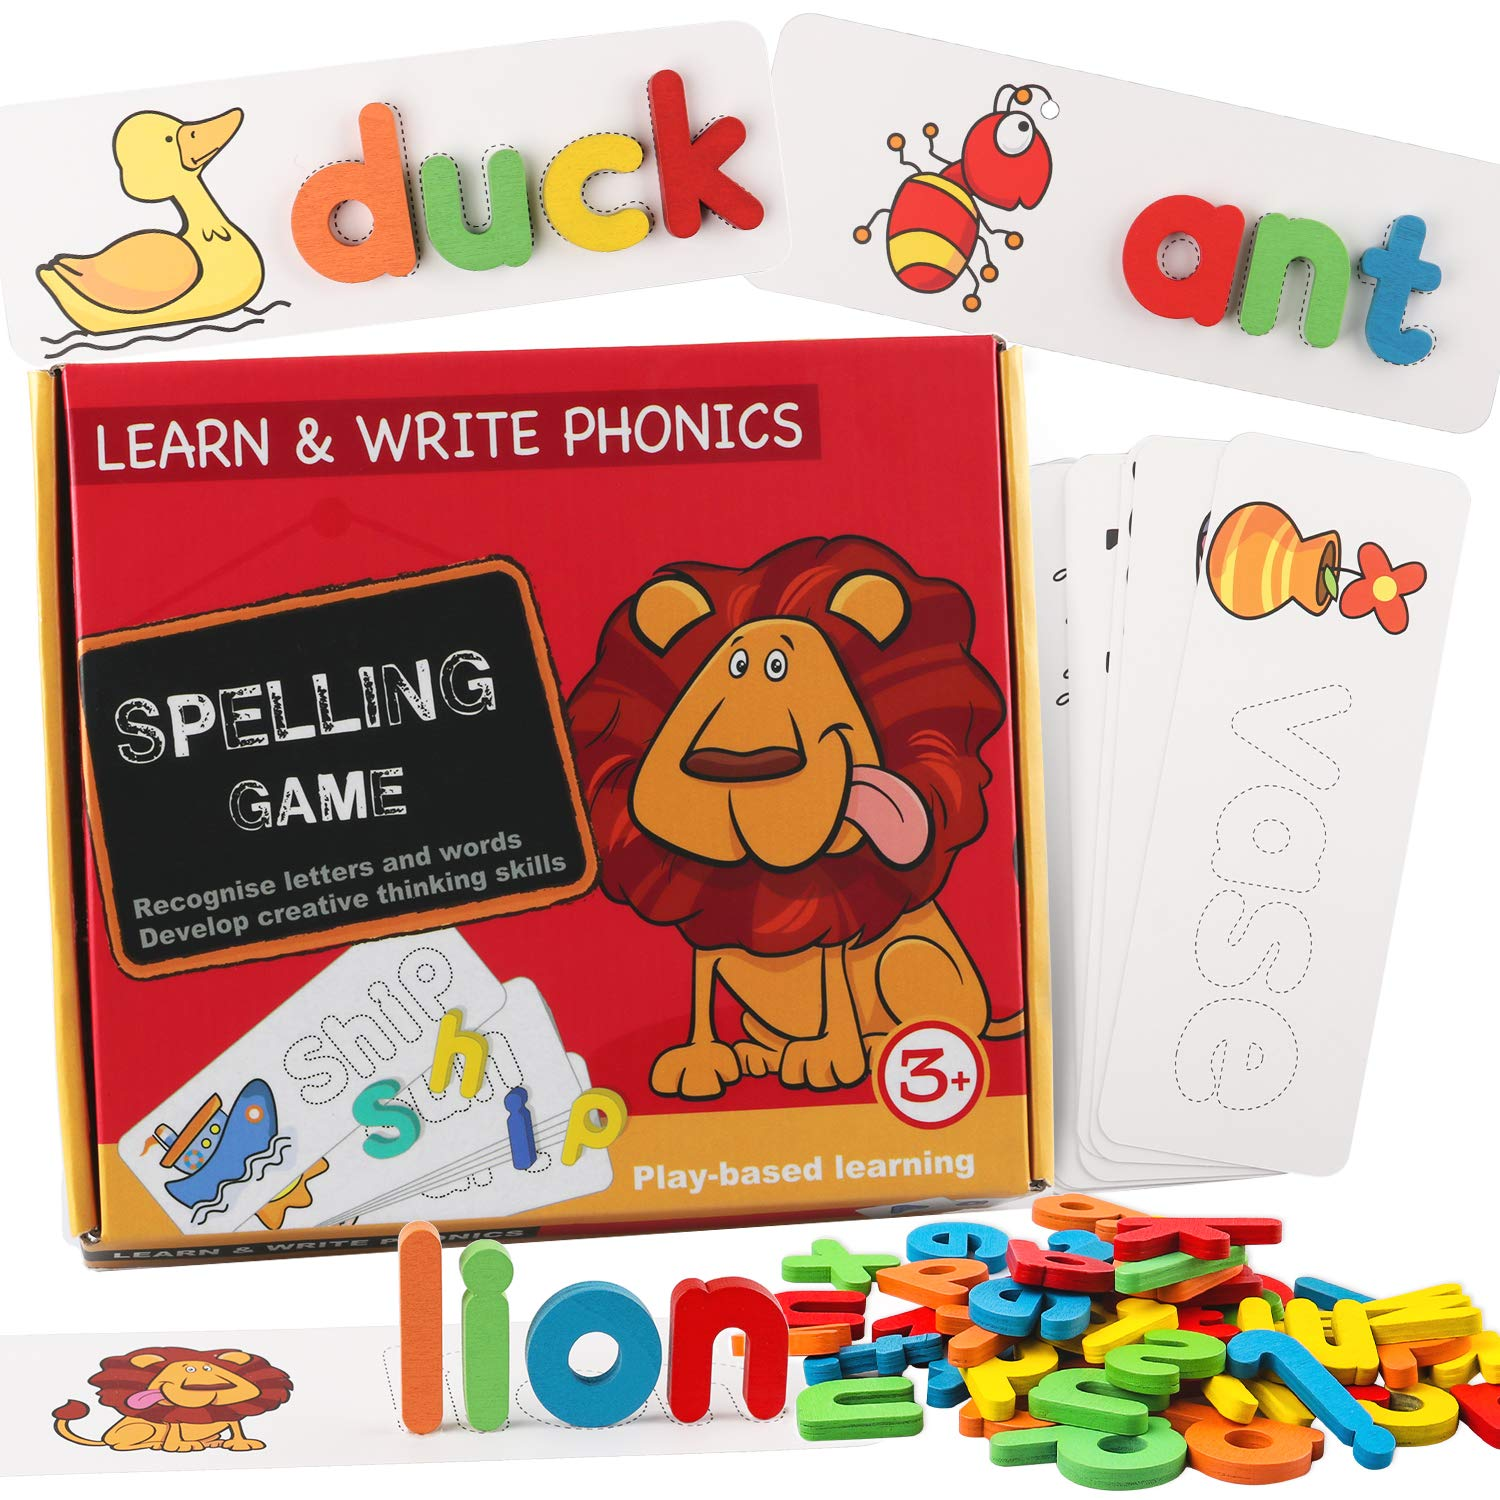 EHO Preschool Educational Toys for 3 Year Old Girls and Boys,Kids Toys